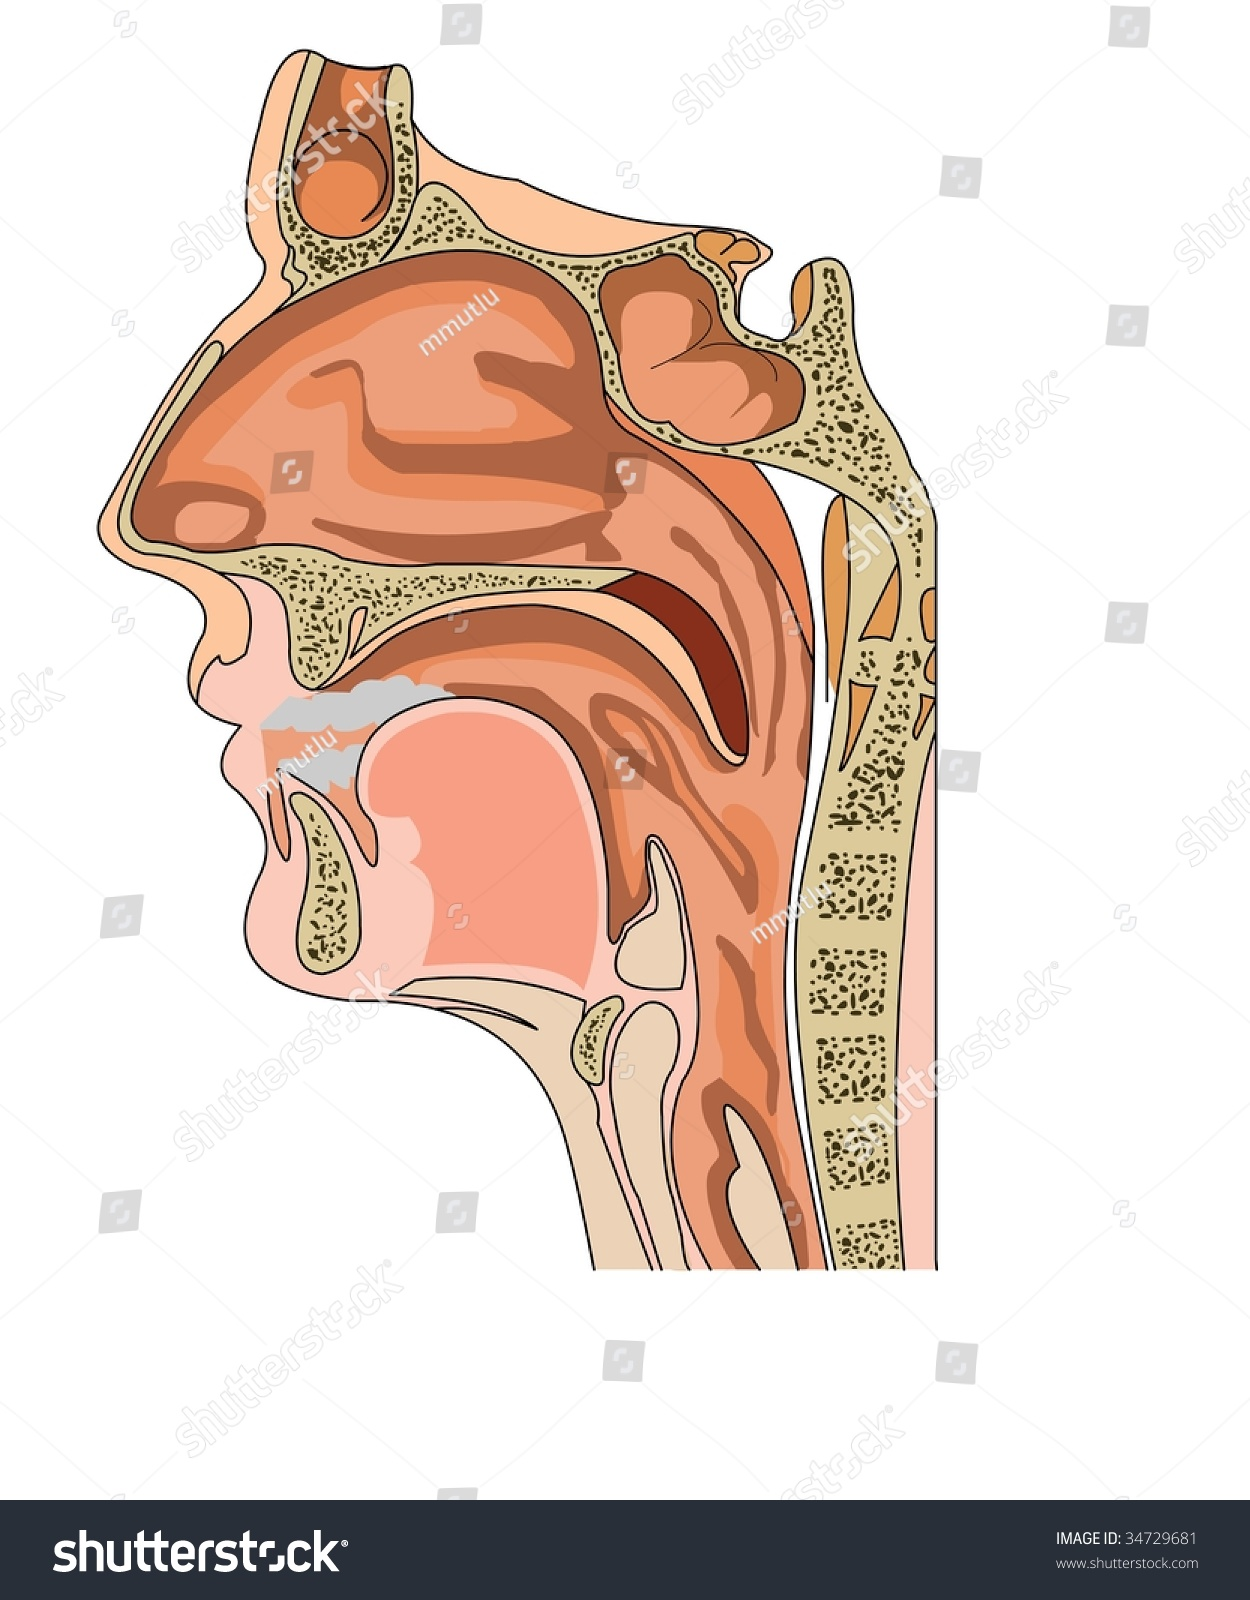 Anatomy Nose Throat Stock Vector 34729681 - Shutterstock